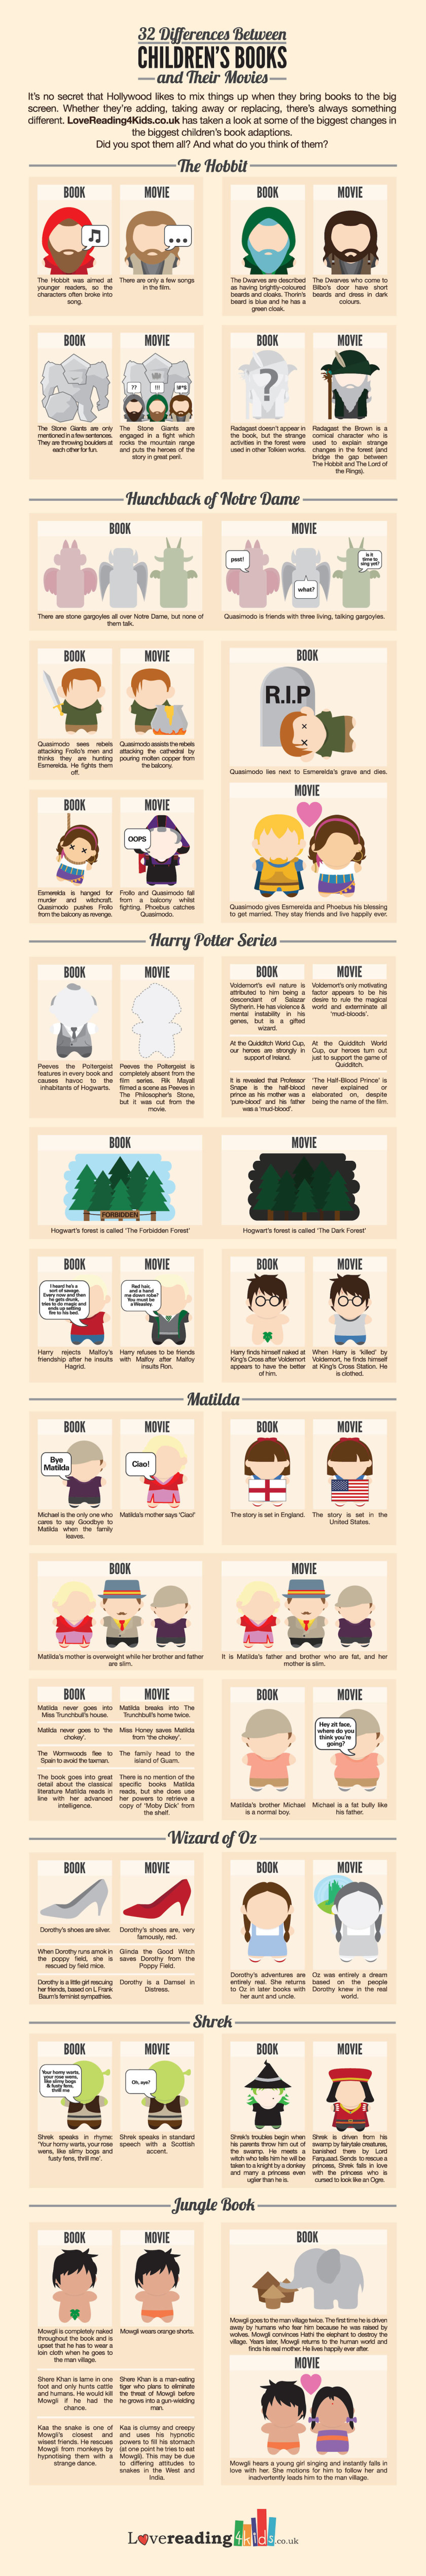 7 famous children's books and how they were turned into movies - infographic